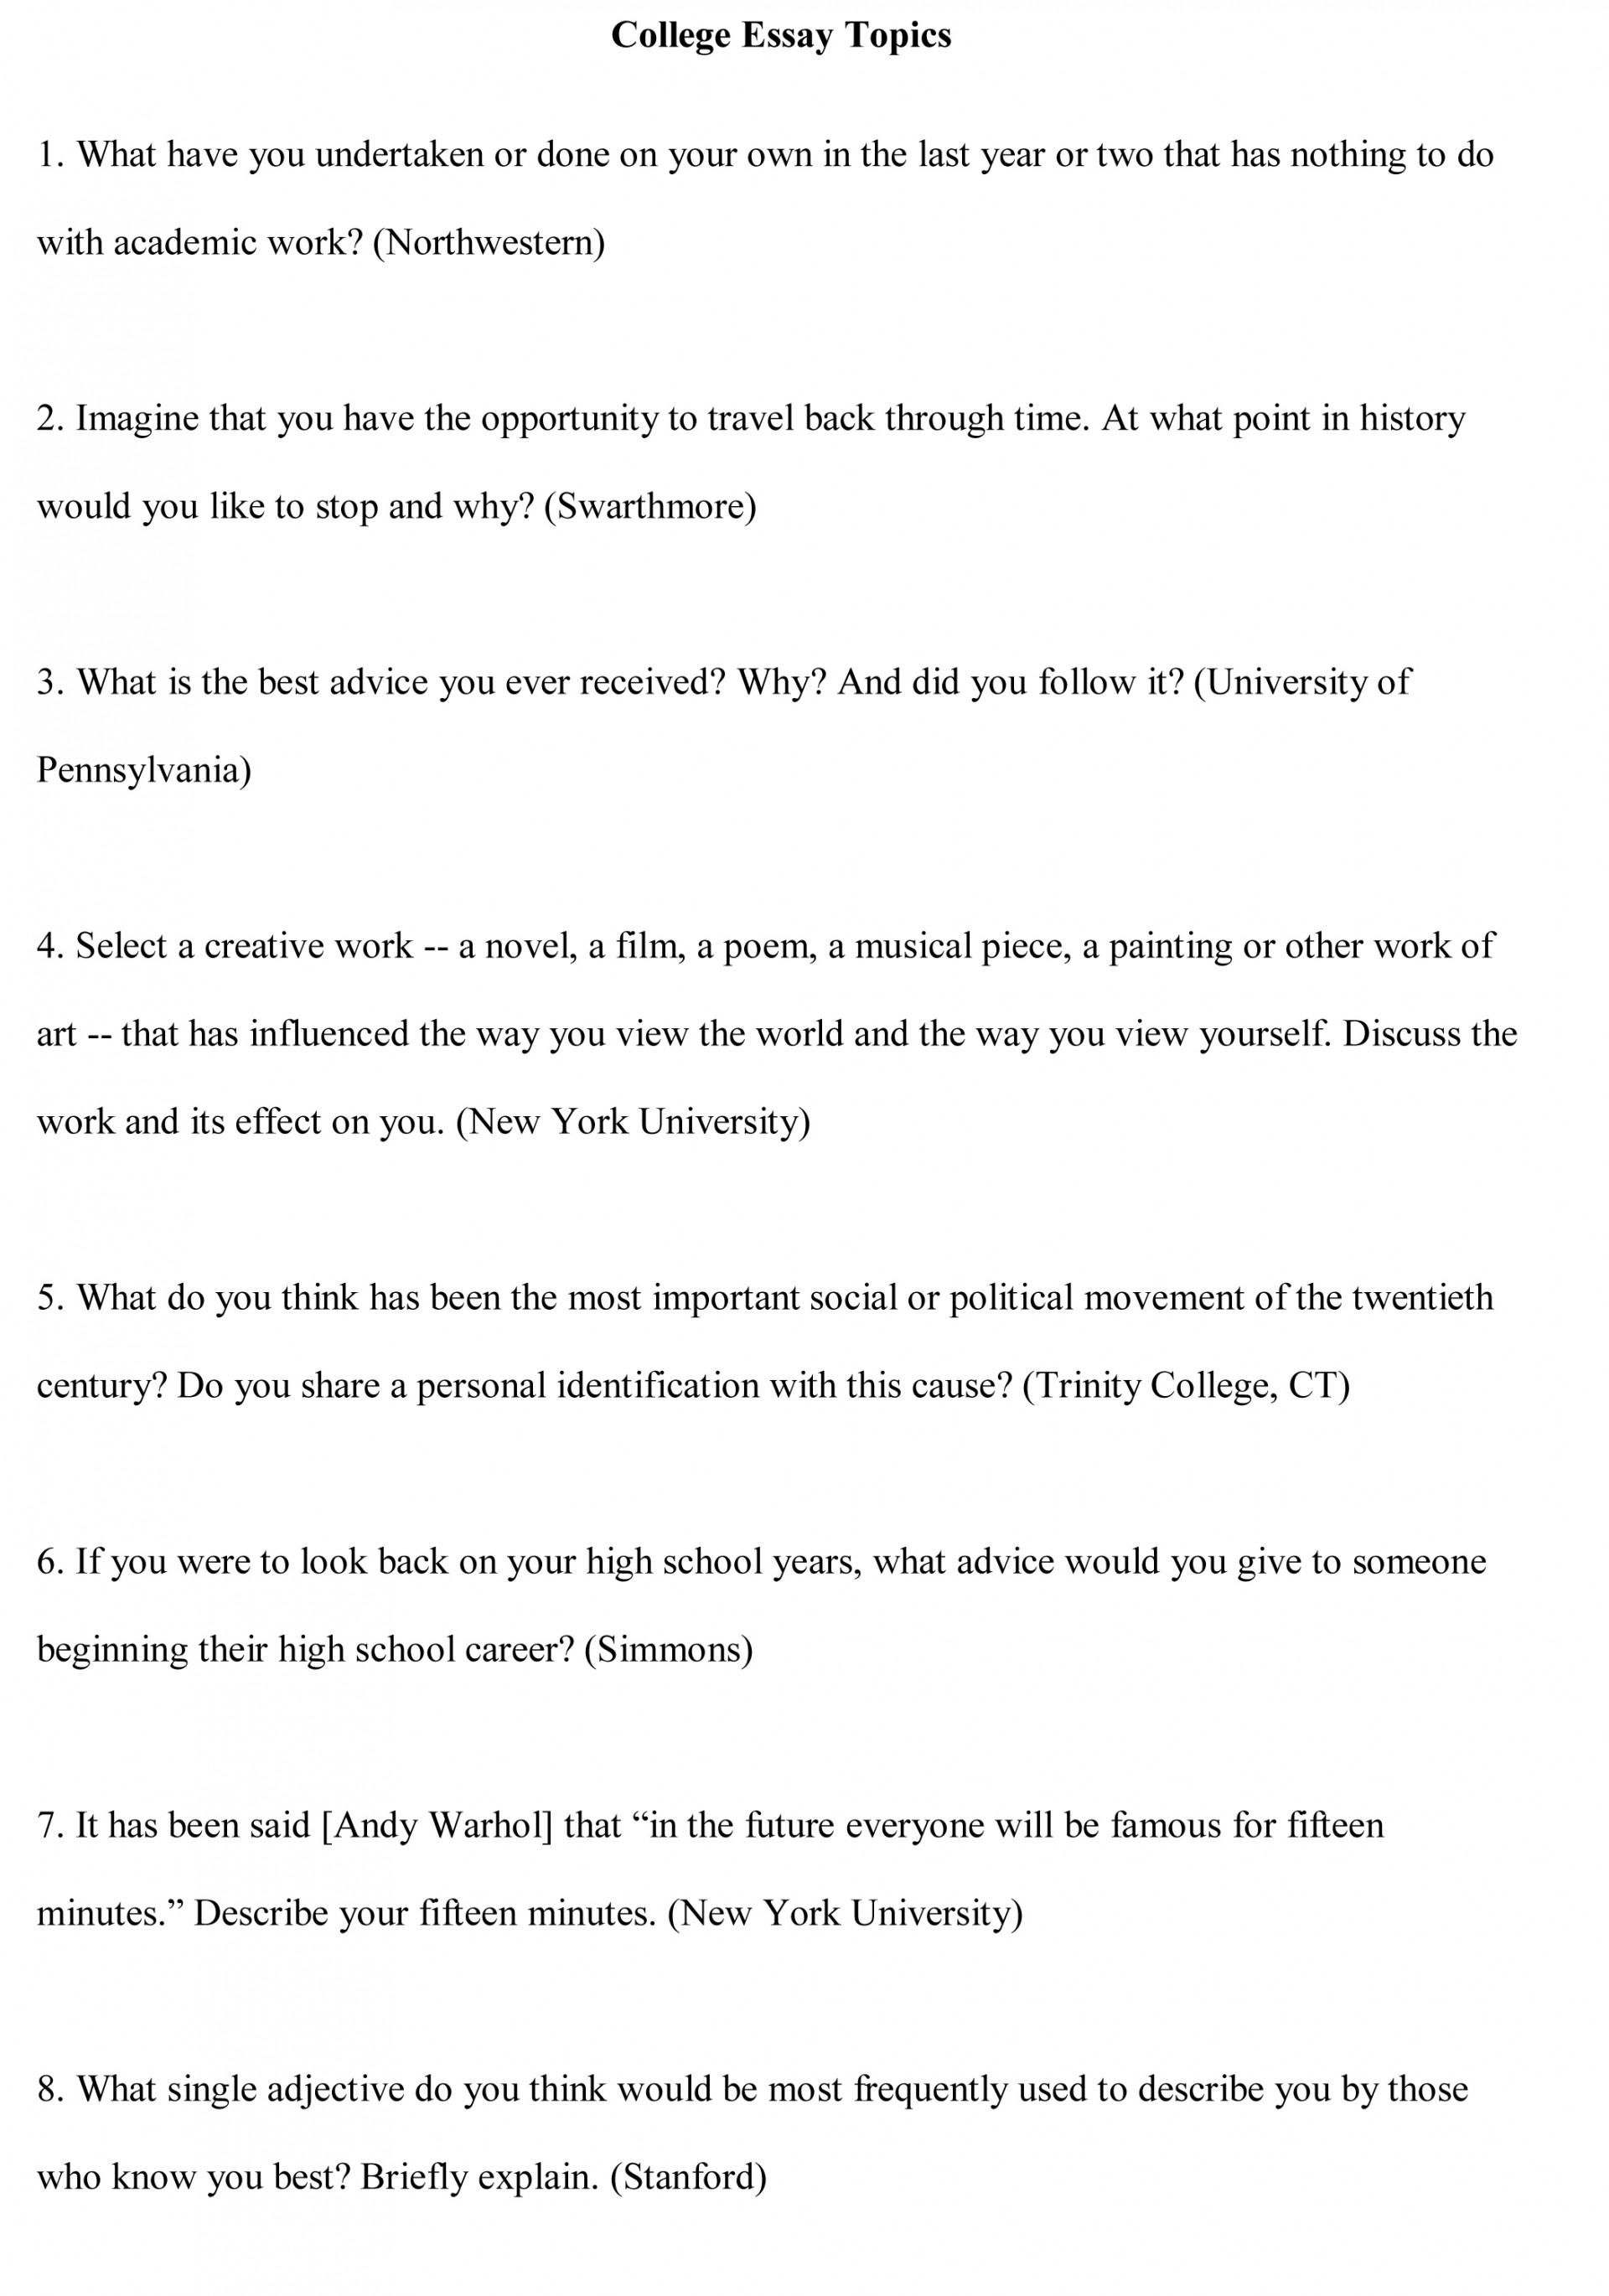 005 College Essay Prompt Examples Example Topics Free Unforgettable Uc #1 5 1920